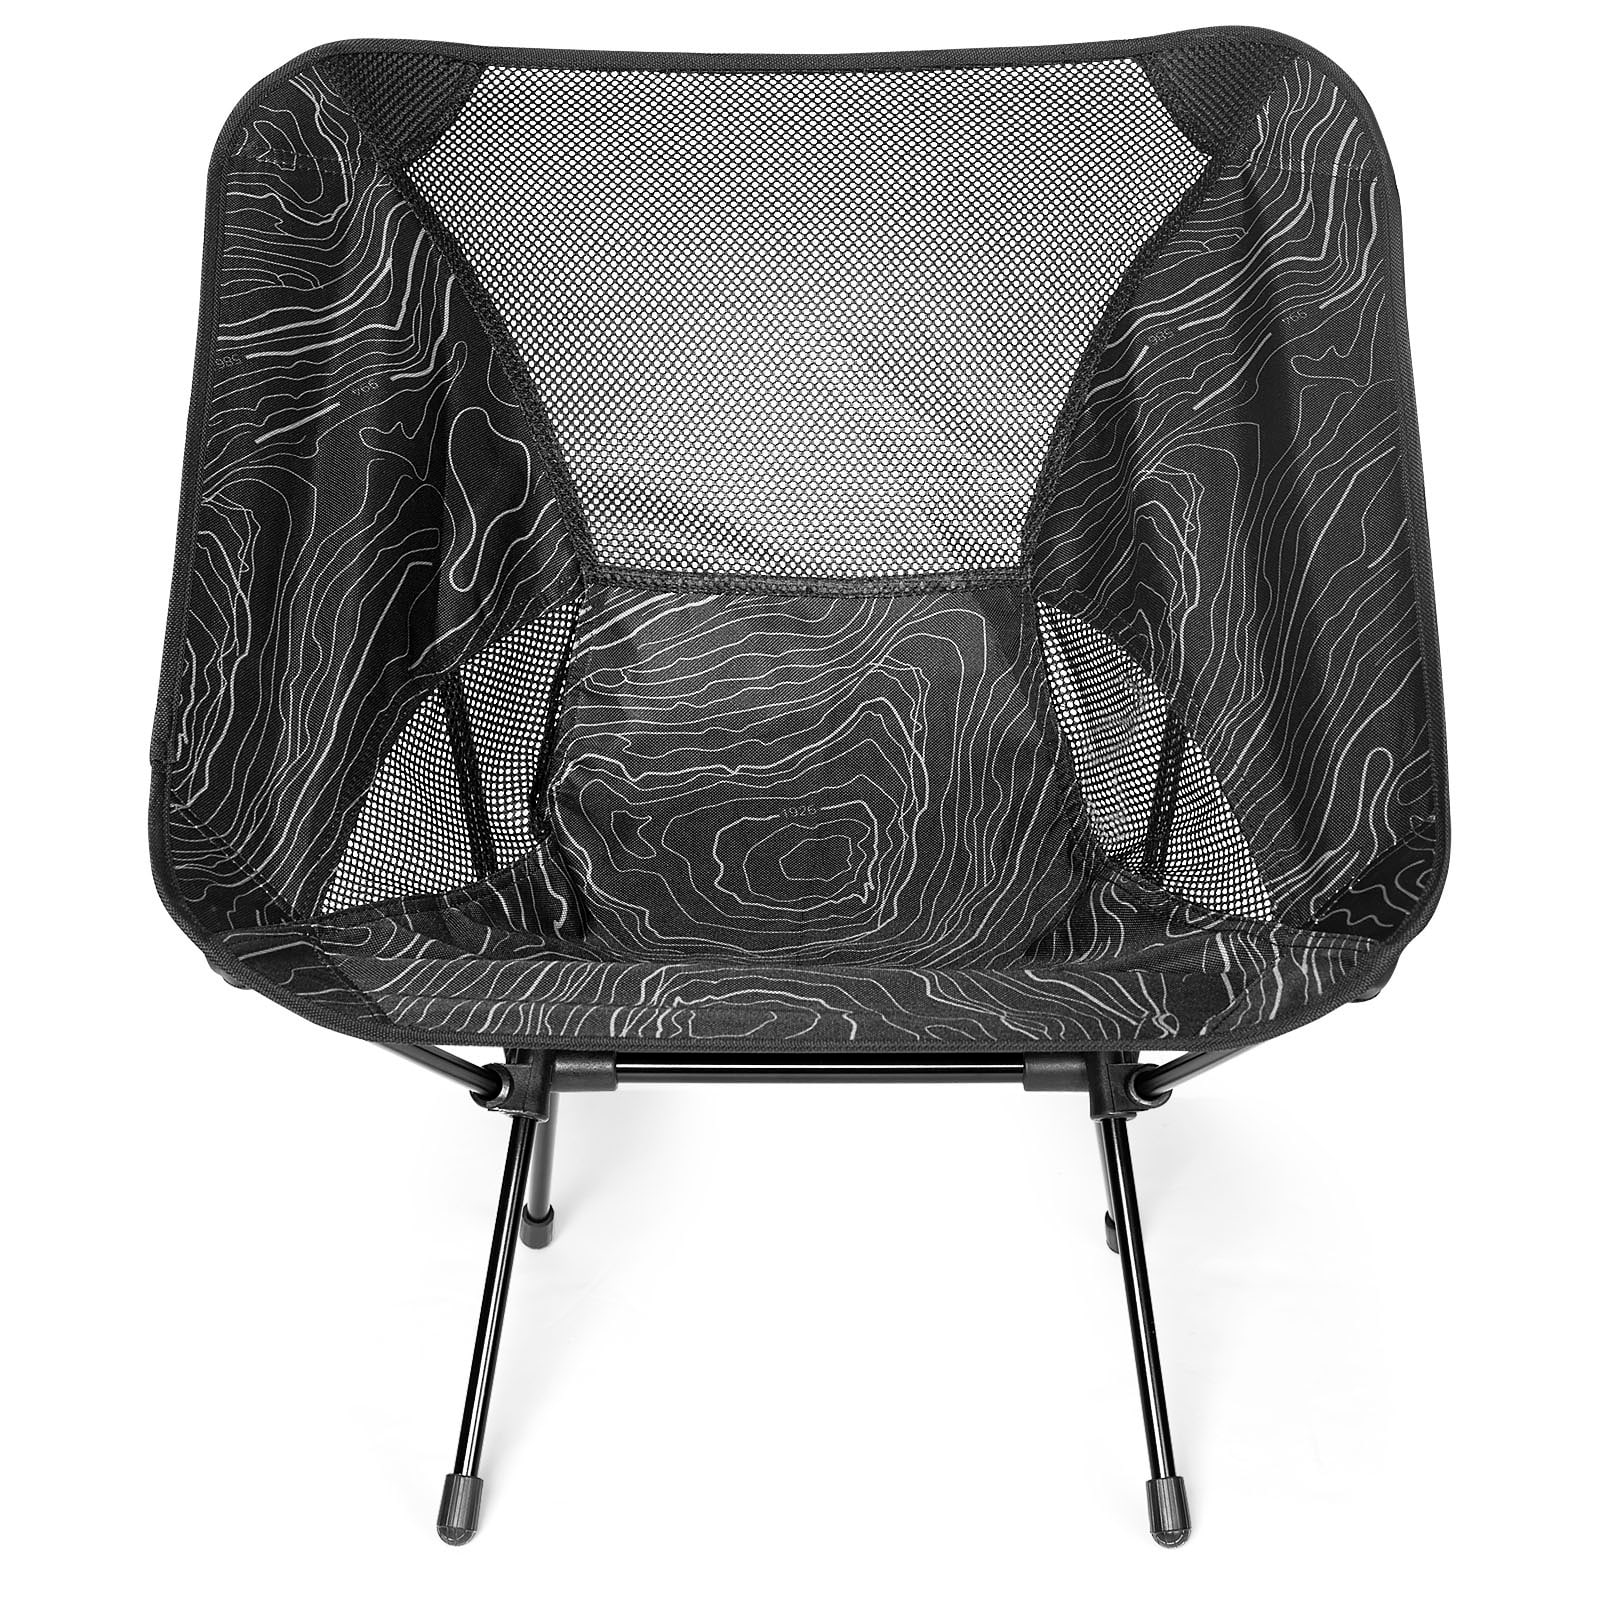 Anorak Chairs Buy Urberg Ultra Chair G2 Map From Outnorth